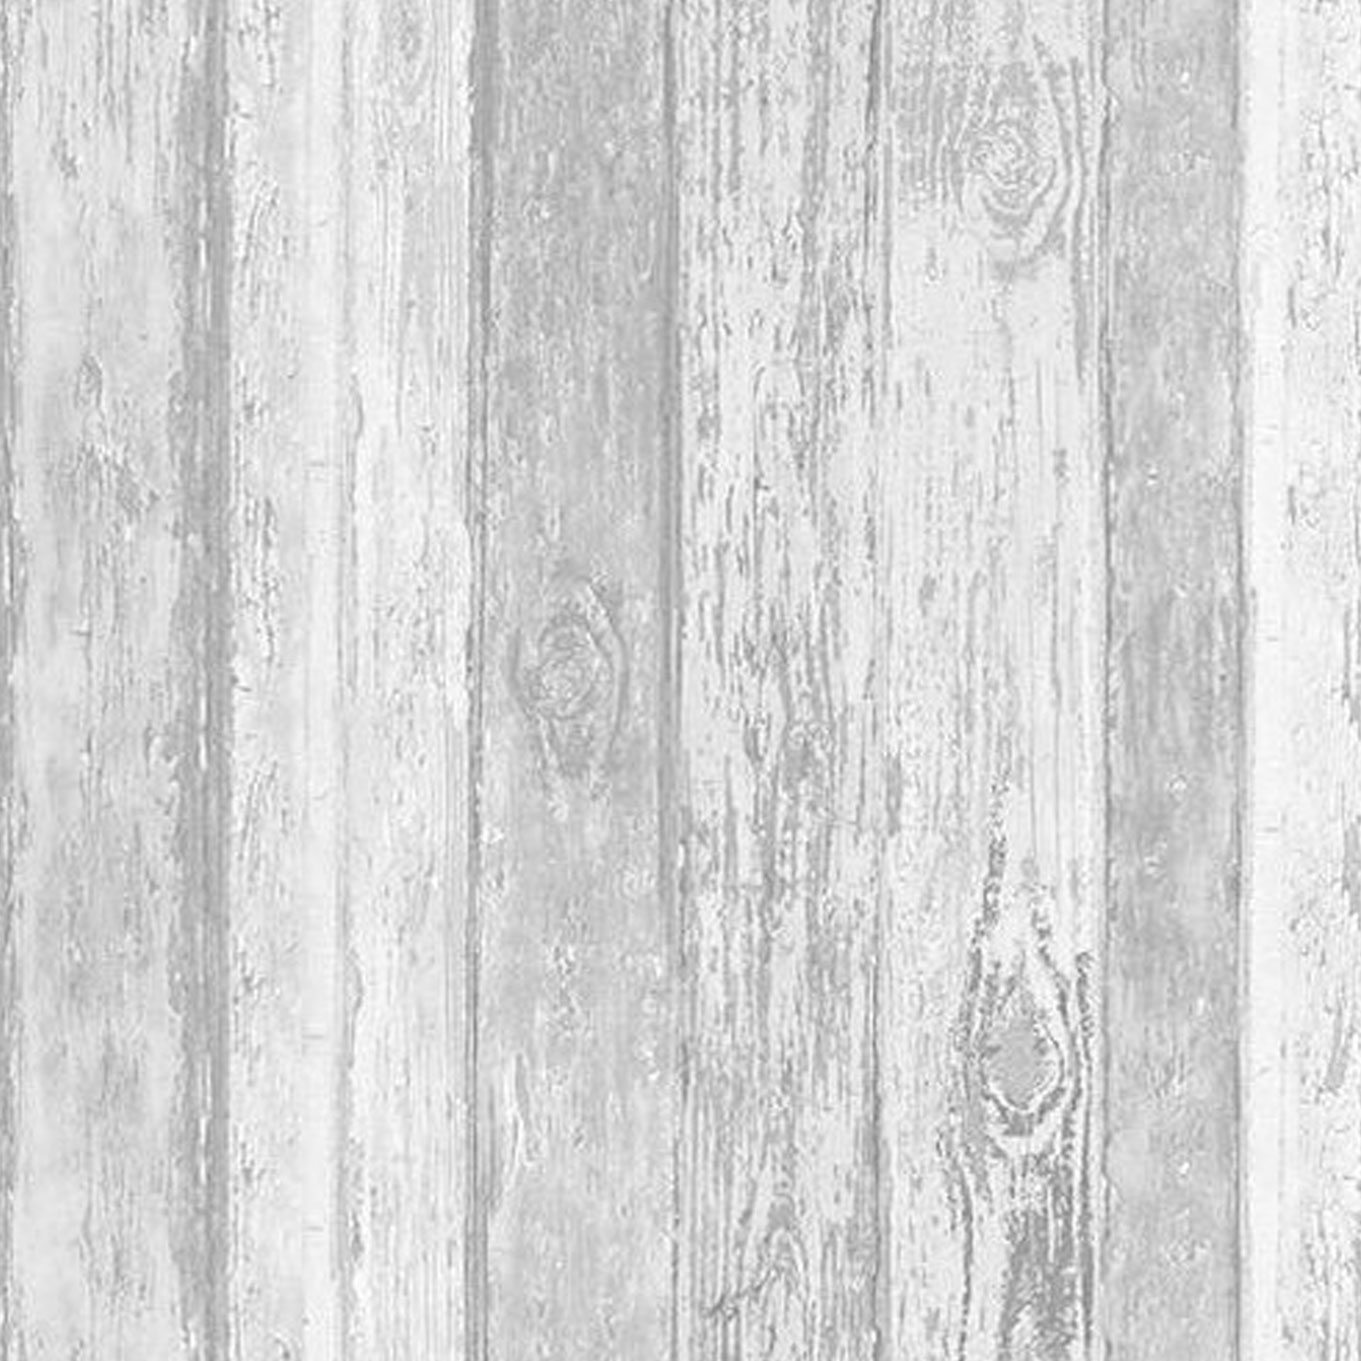 Wood Panel Wallpaper Wooden Planks Boards Beach Hut Glitter Driftwood Coloroll